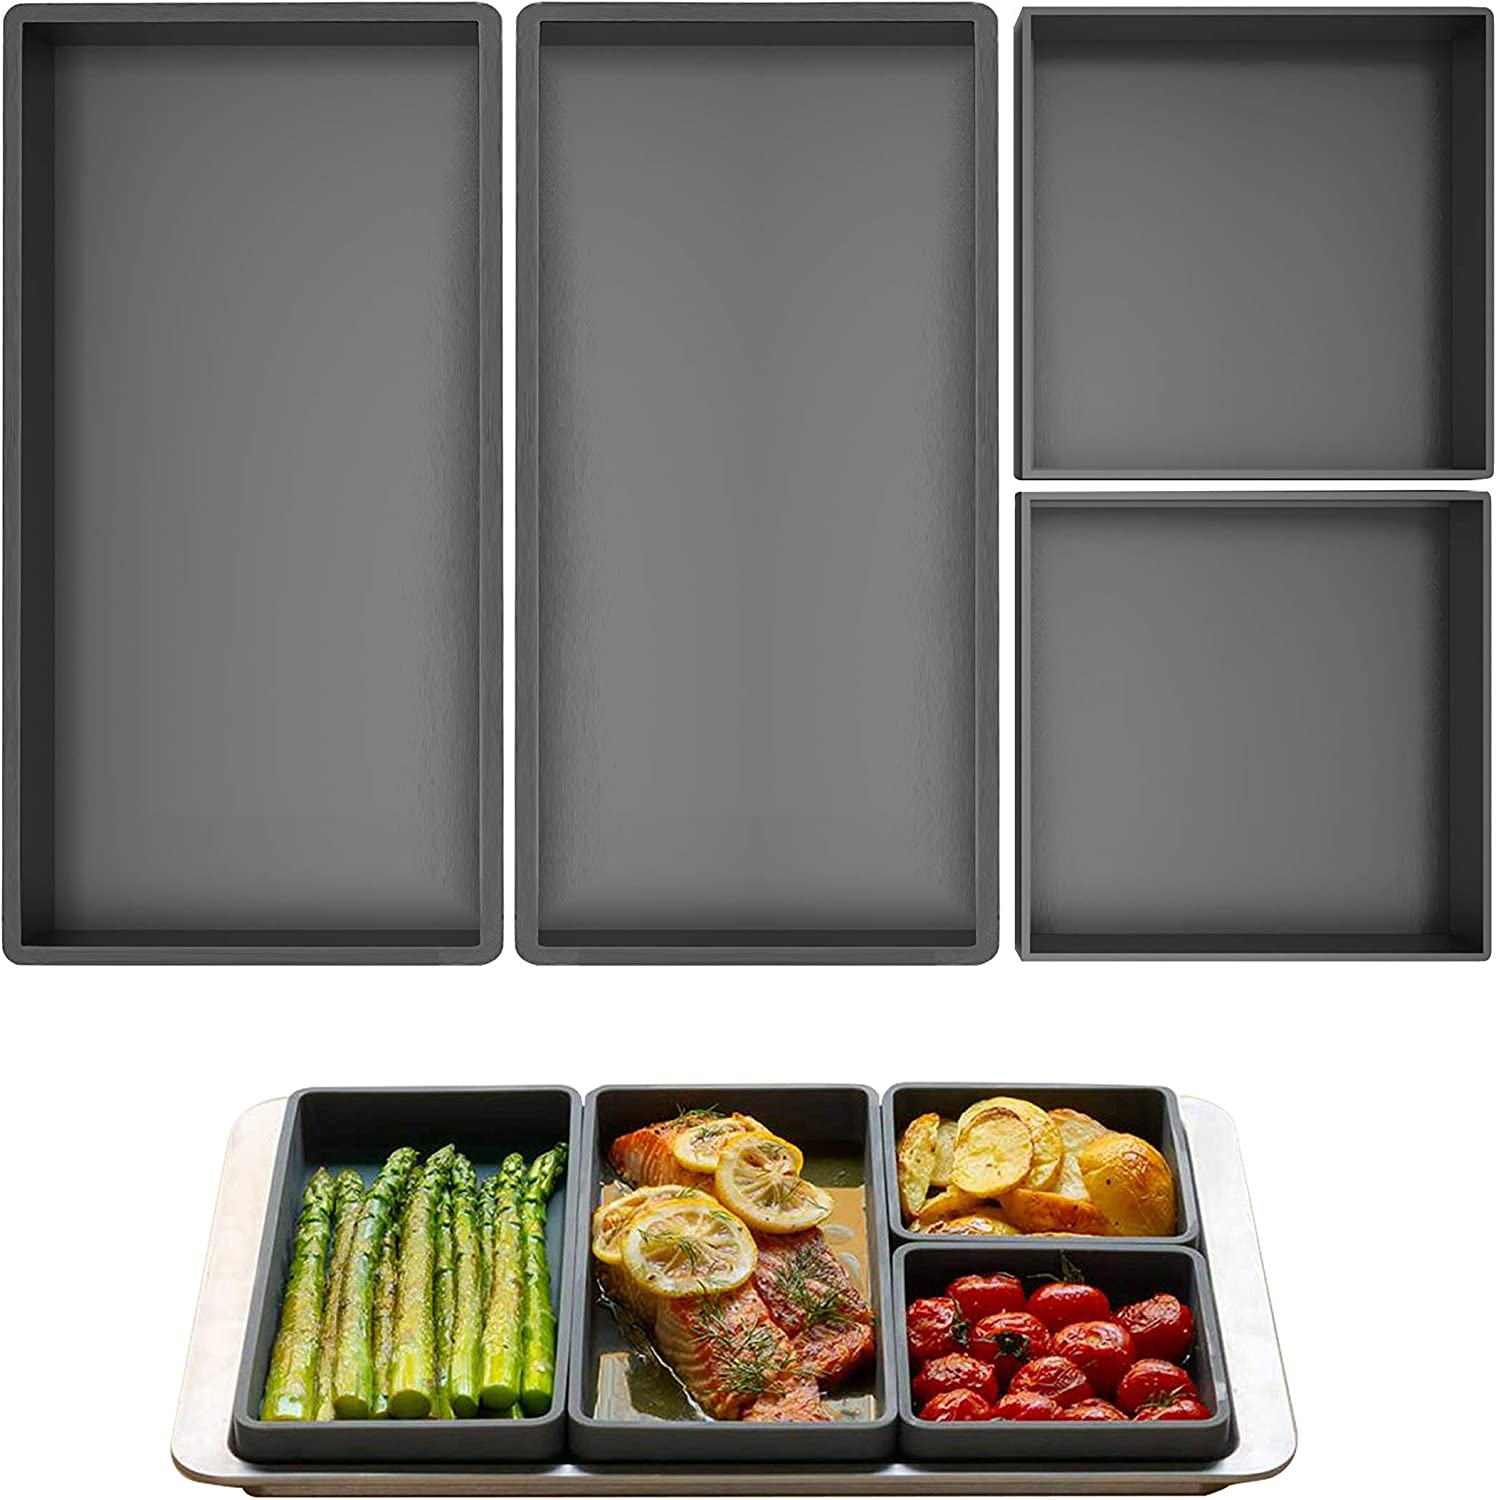 Cookery : Cheat Sheets Silicone Baking Trays Cooking Reimagined, Sheet Pan Dividers, Nonstick Food Grade Silicone, Oven-Safe, Fit on Standard Sheet Pan, Dishwasher Safe, Easy to Clean. (Set of 4 pcs)